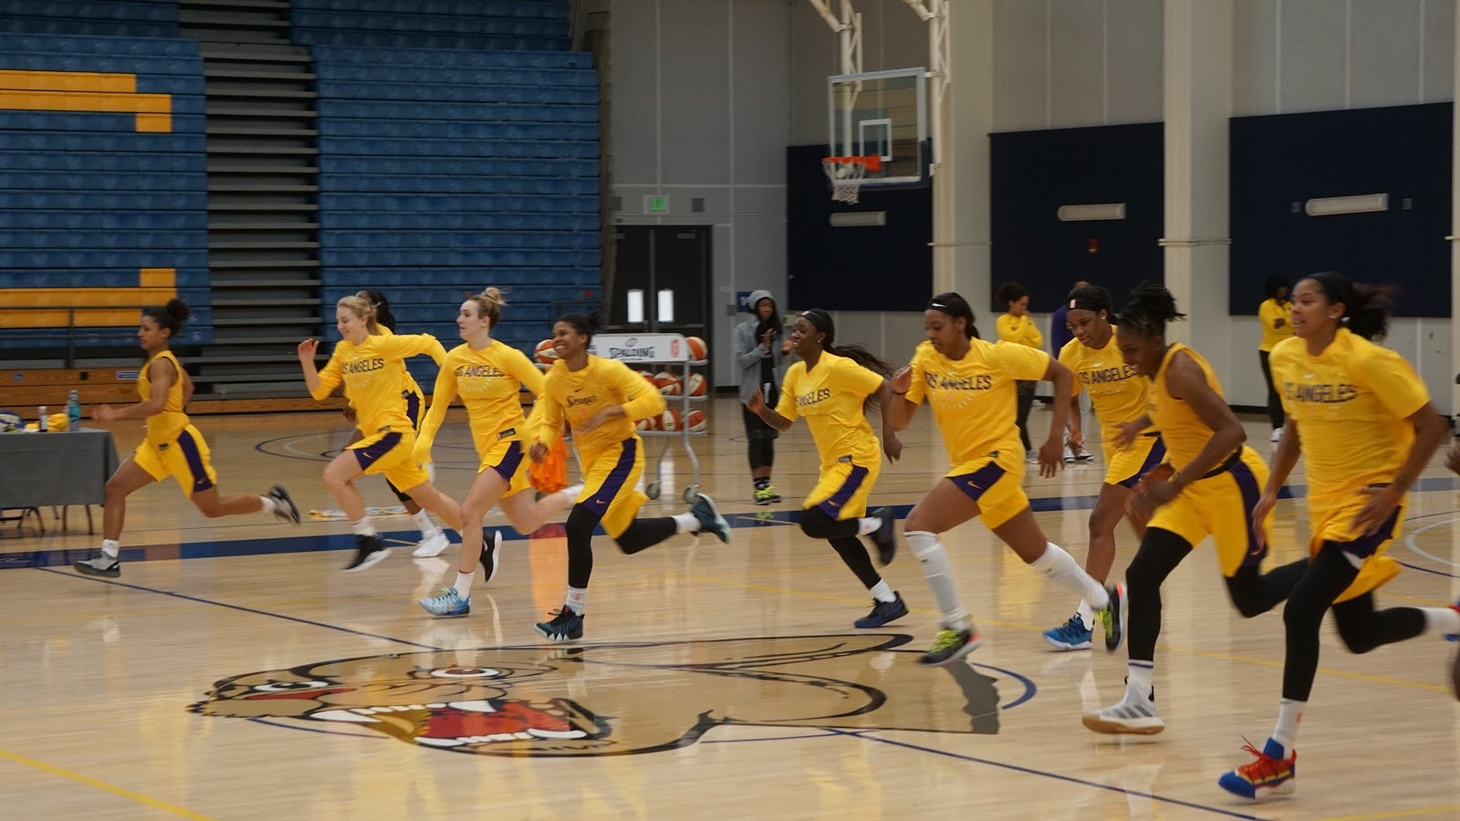 Sparks practice at the gym at Los Angeles Southwest College.